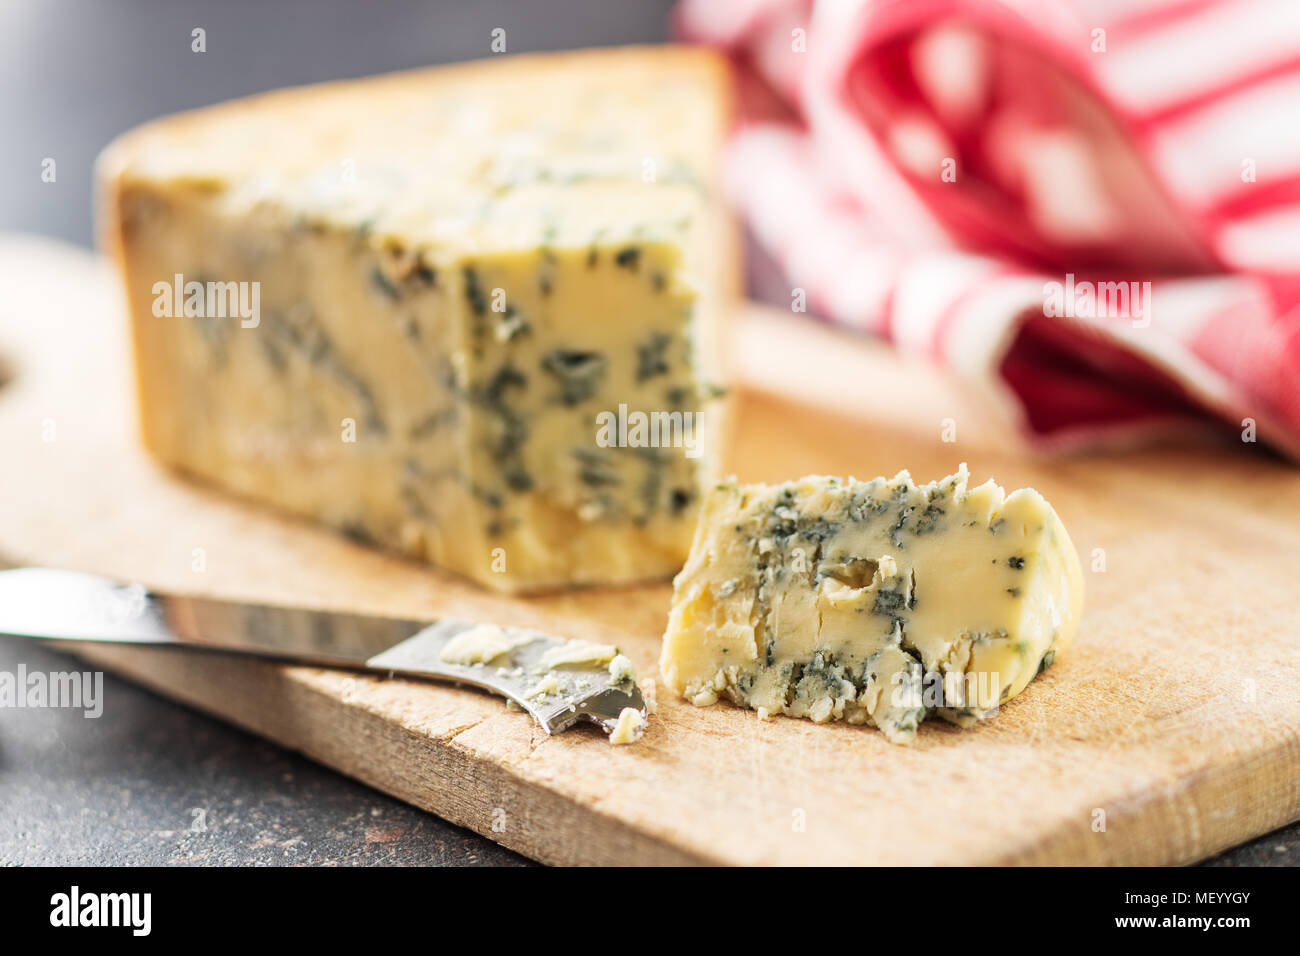 Tasty blue cheese on cutting board. - Stock Image